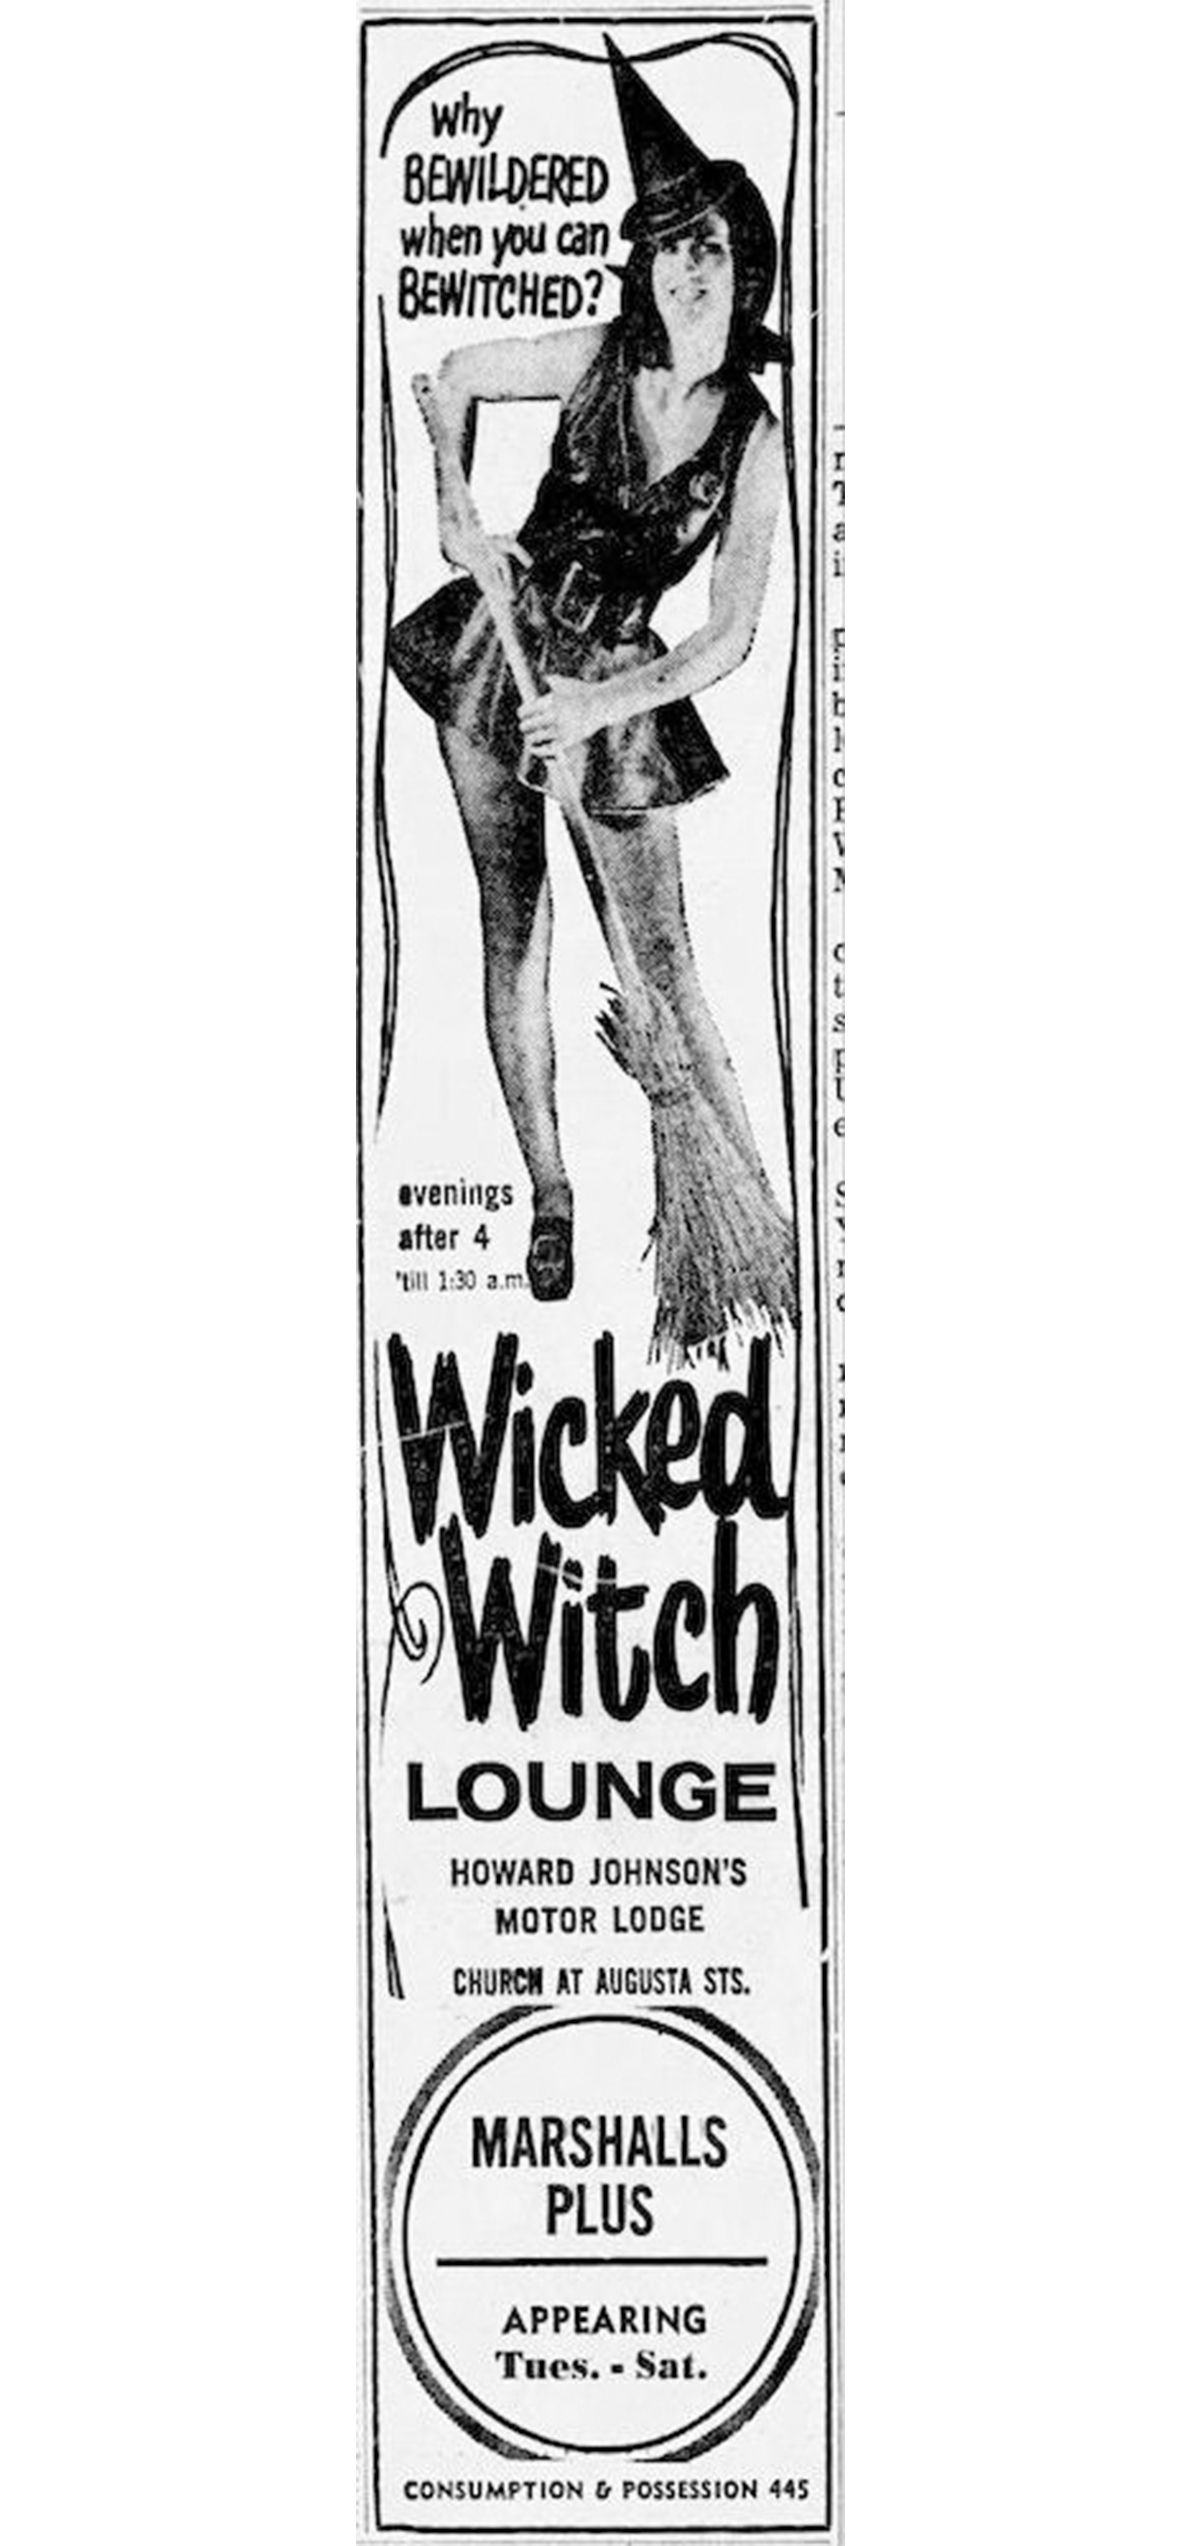 Wicked Witch Lounge ad in The Greenville News from Sept. 4, 1970